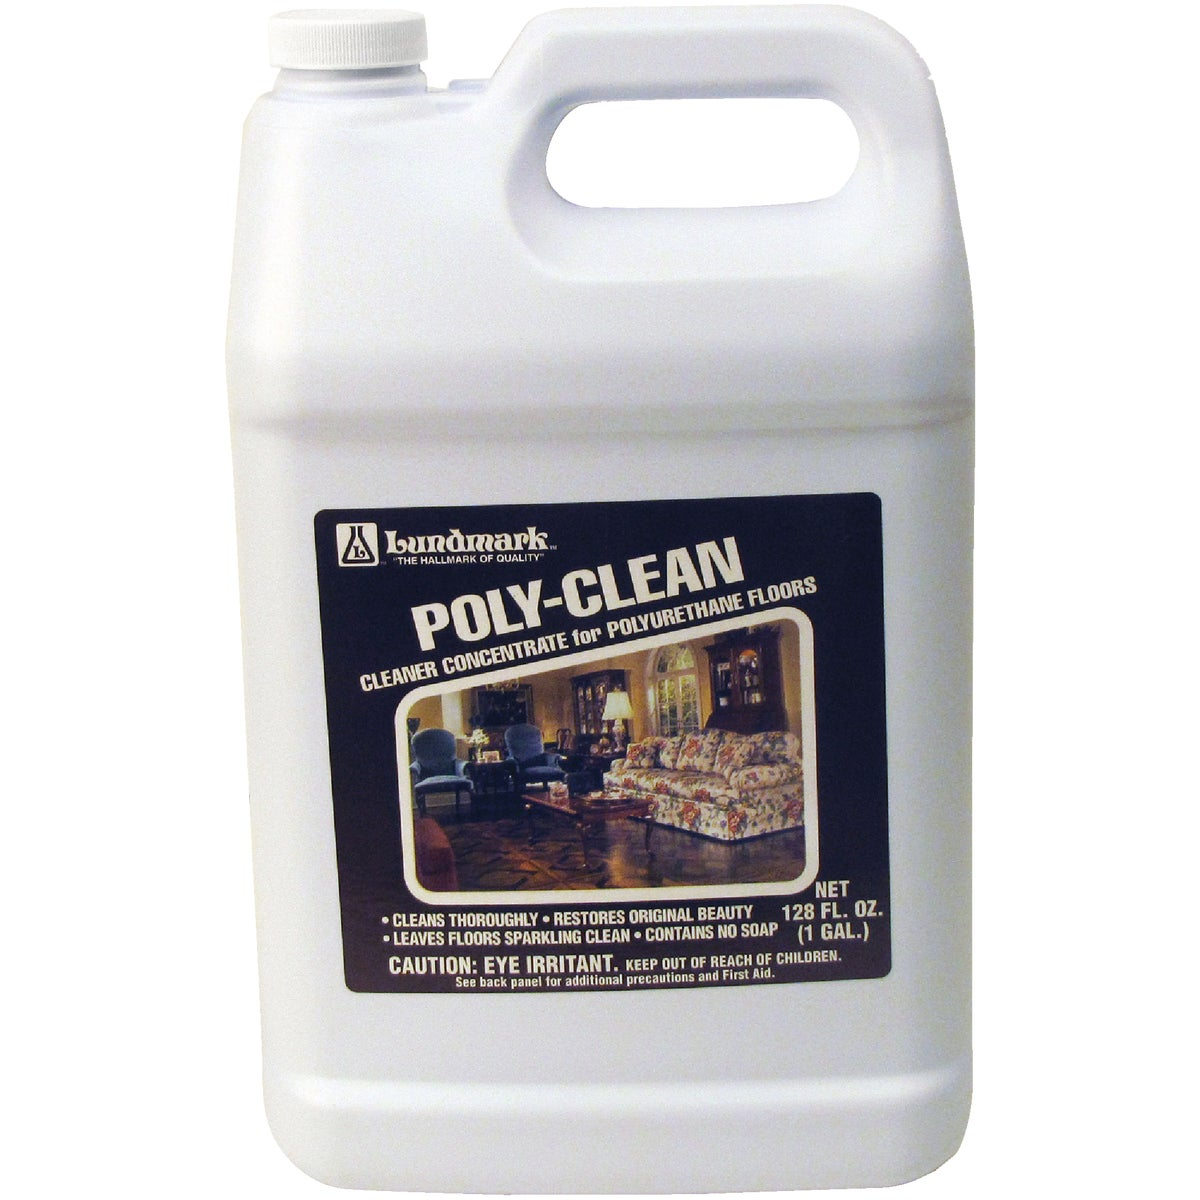 GALLON POLY-CLEAN - 3227G01-2 by Lundmark Wax Co